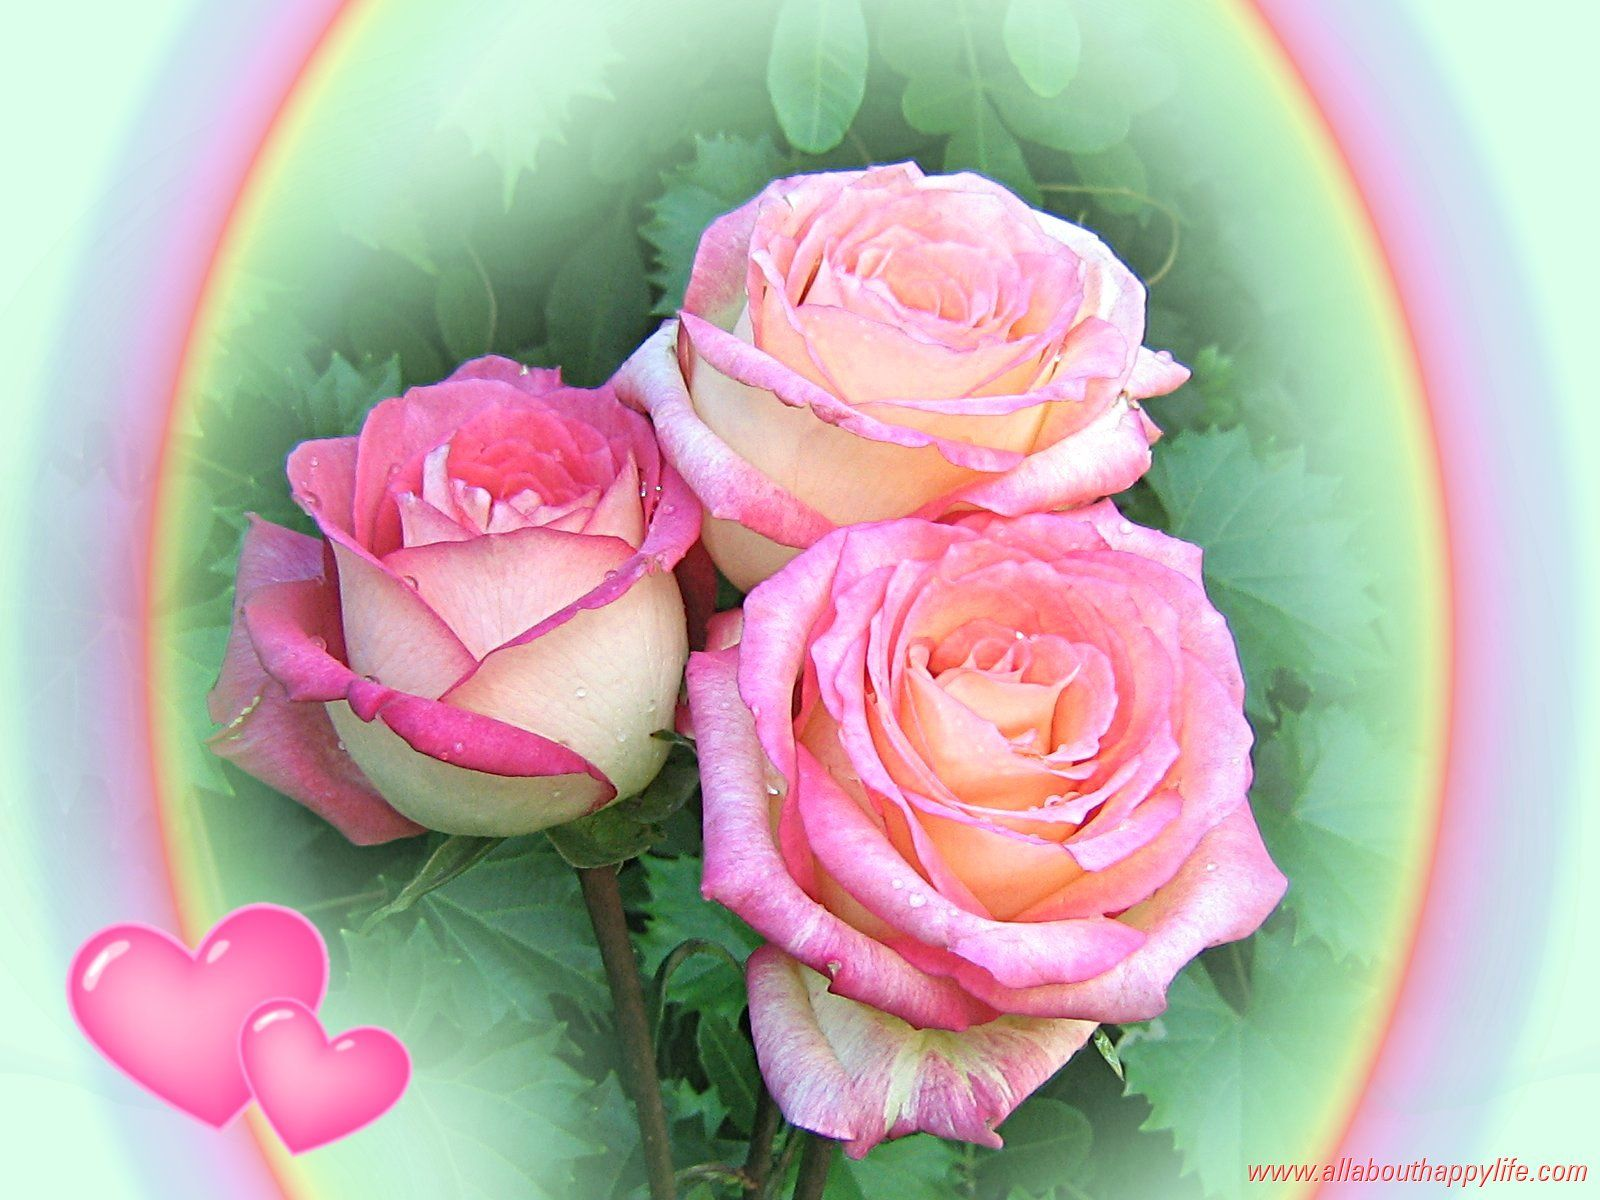 All Roses   pink roses   Love wallpaper, Rose, Hello friends images